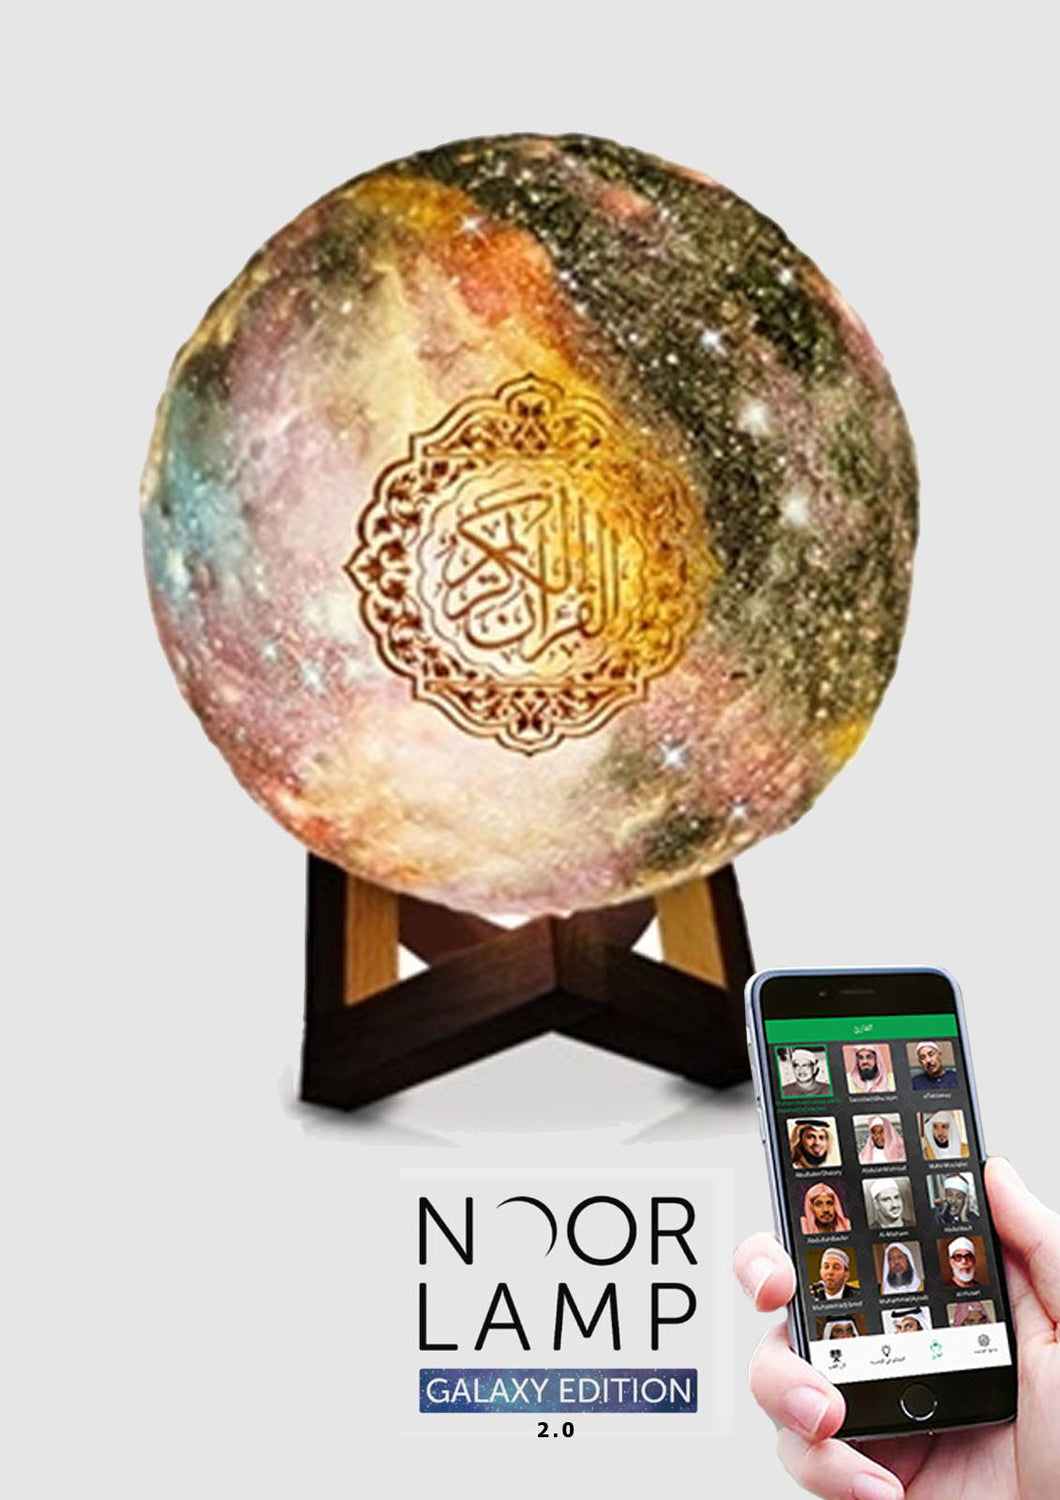 Noor Lamp 2.0 (Galaxy Edition with App)